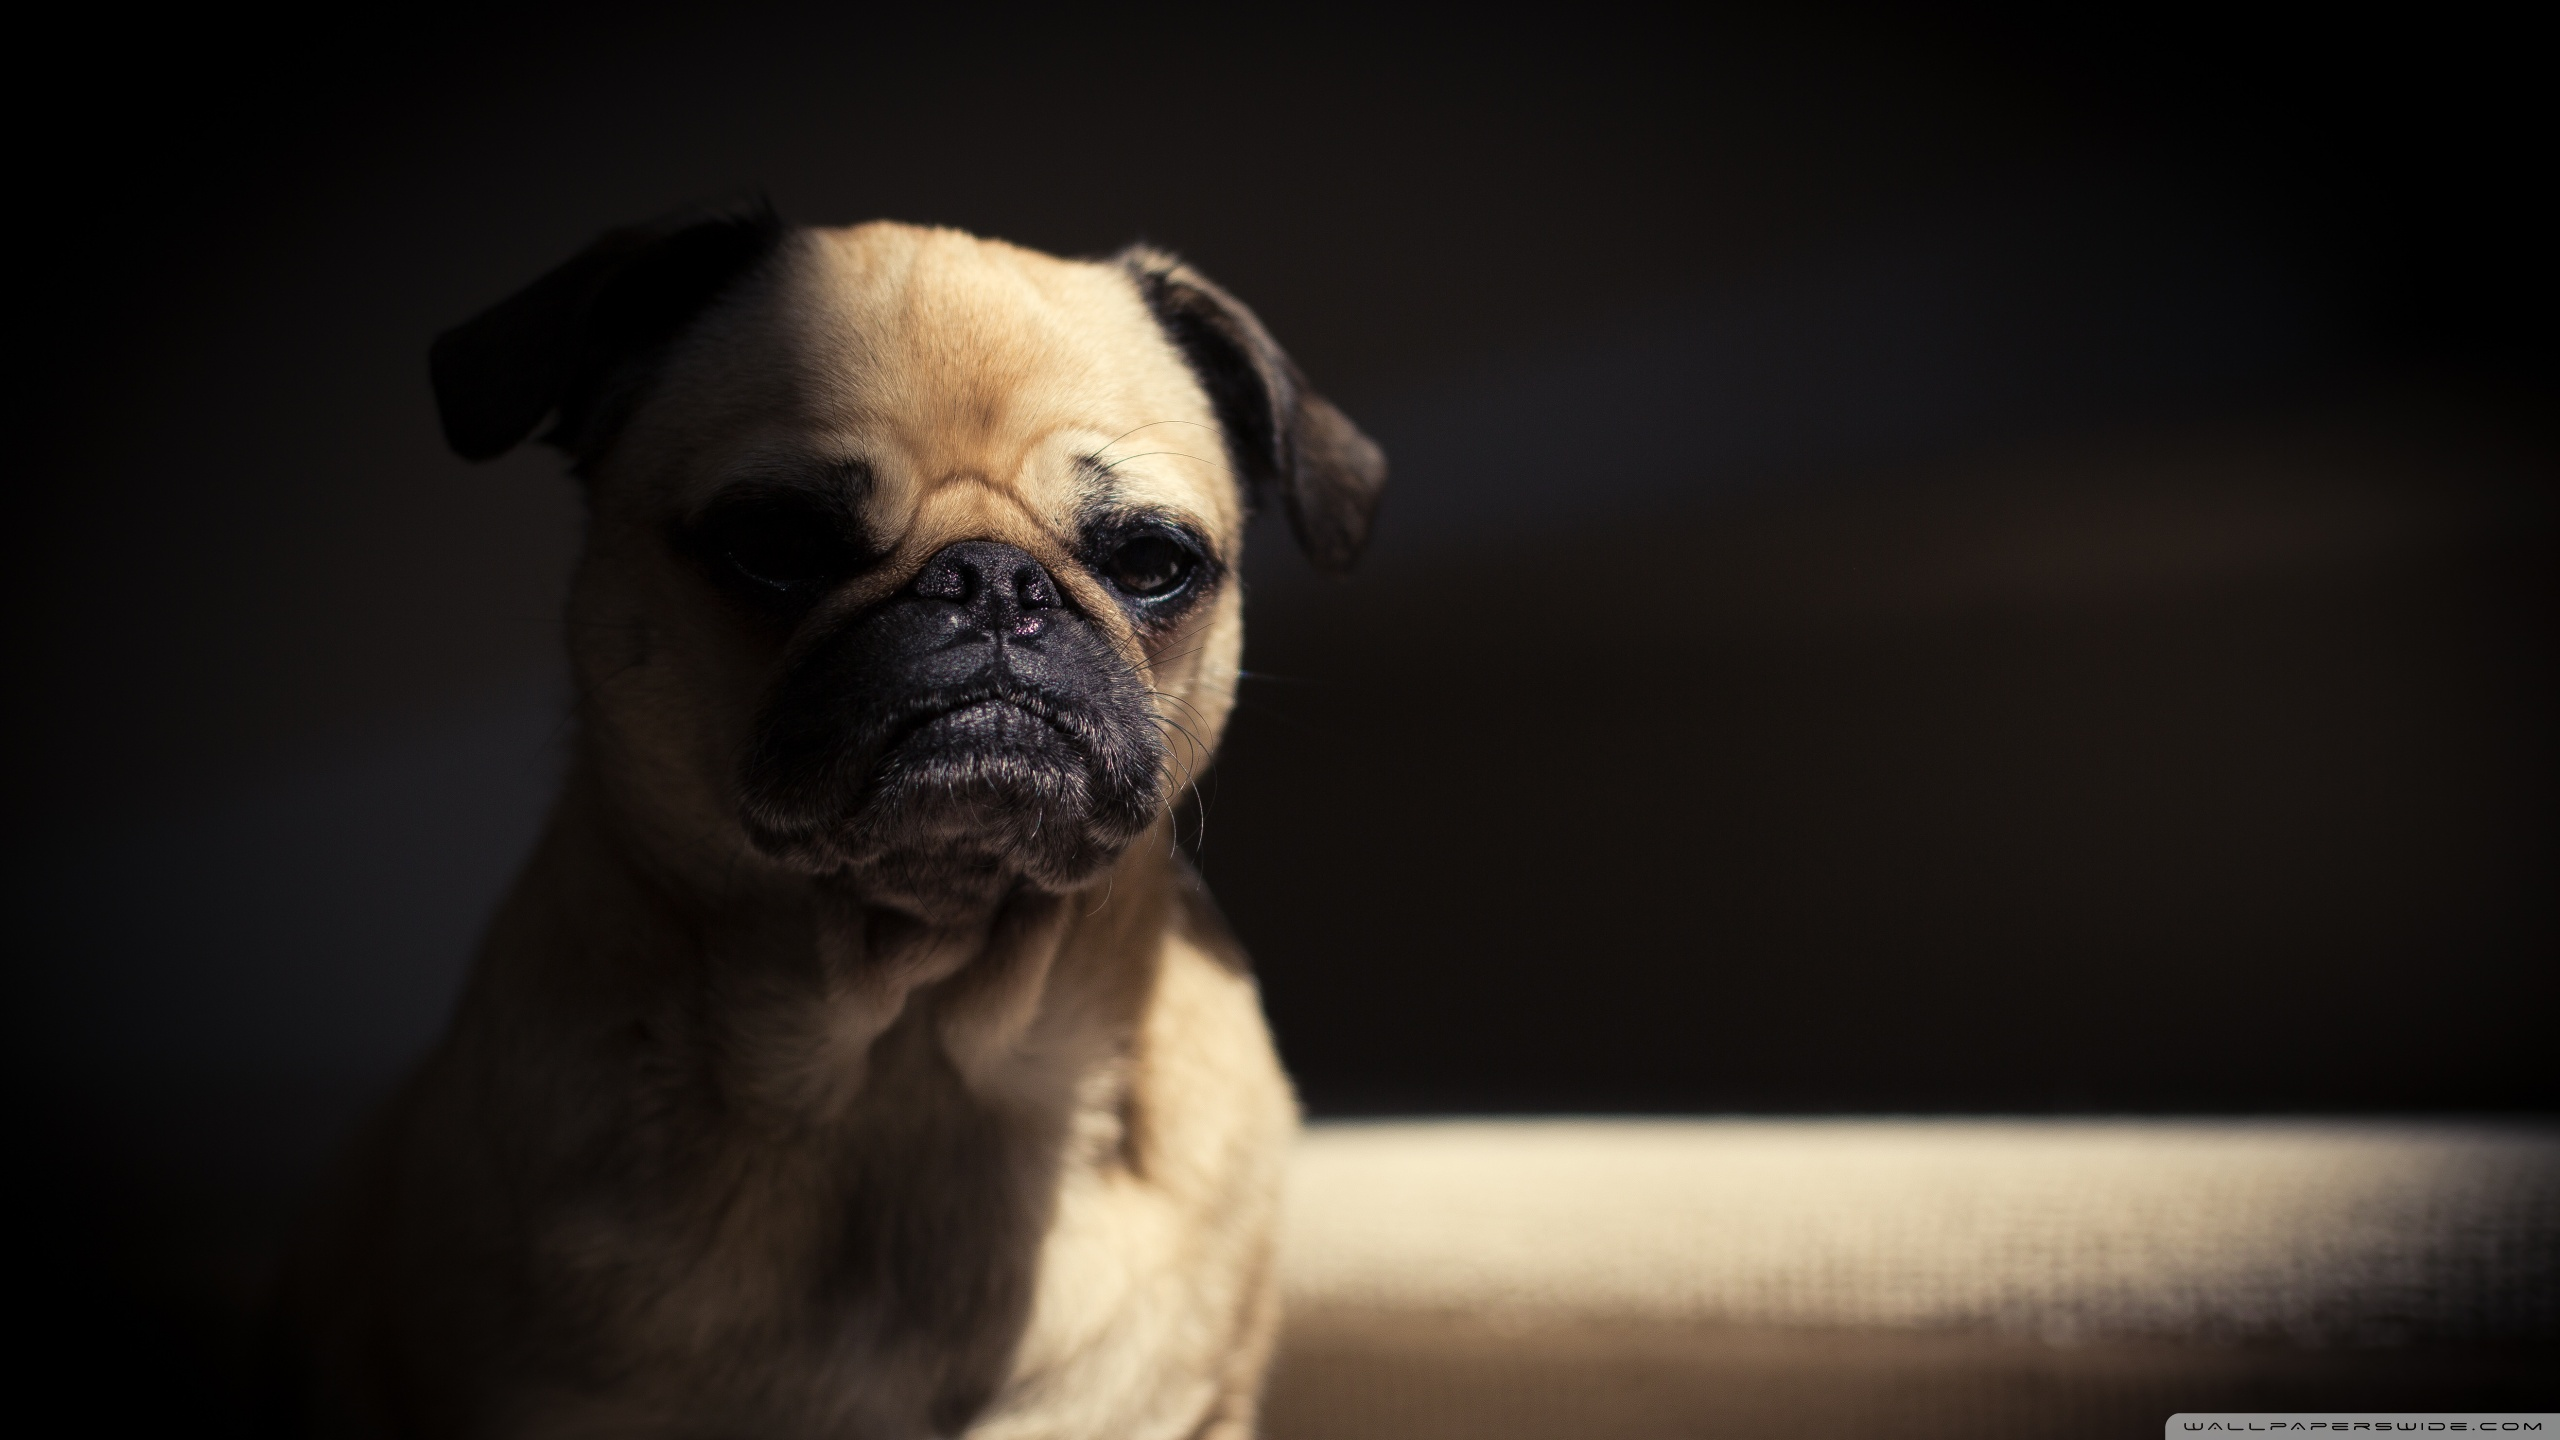 Cute Wallpaper For Ipad Mini 2 Very Sad Pug Dog 4k Hd Desktop Wallpaper For 4k Ultra Hd